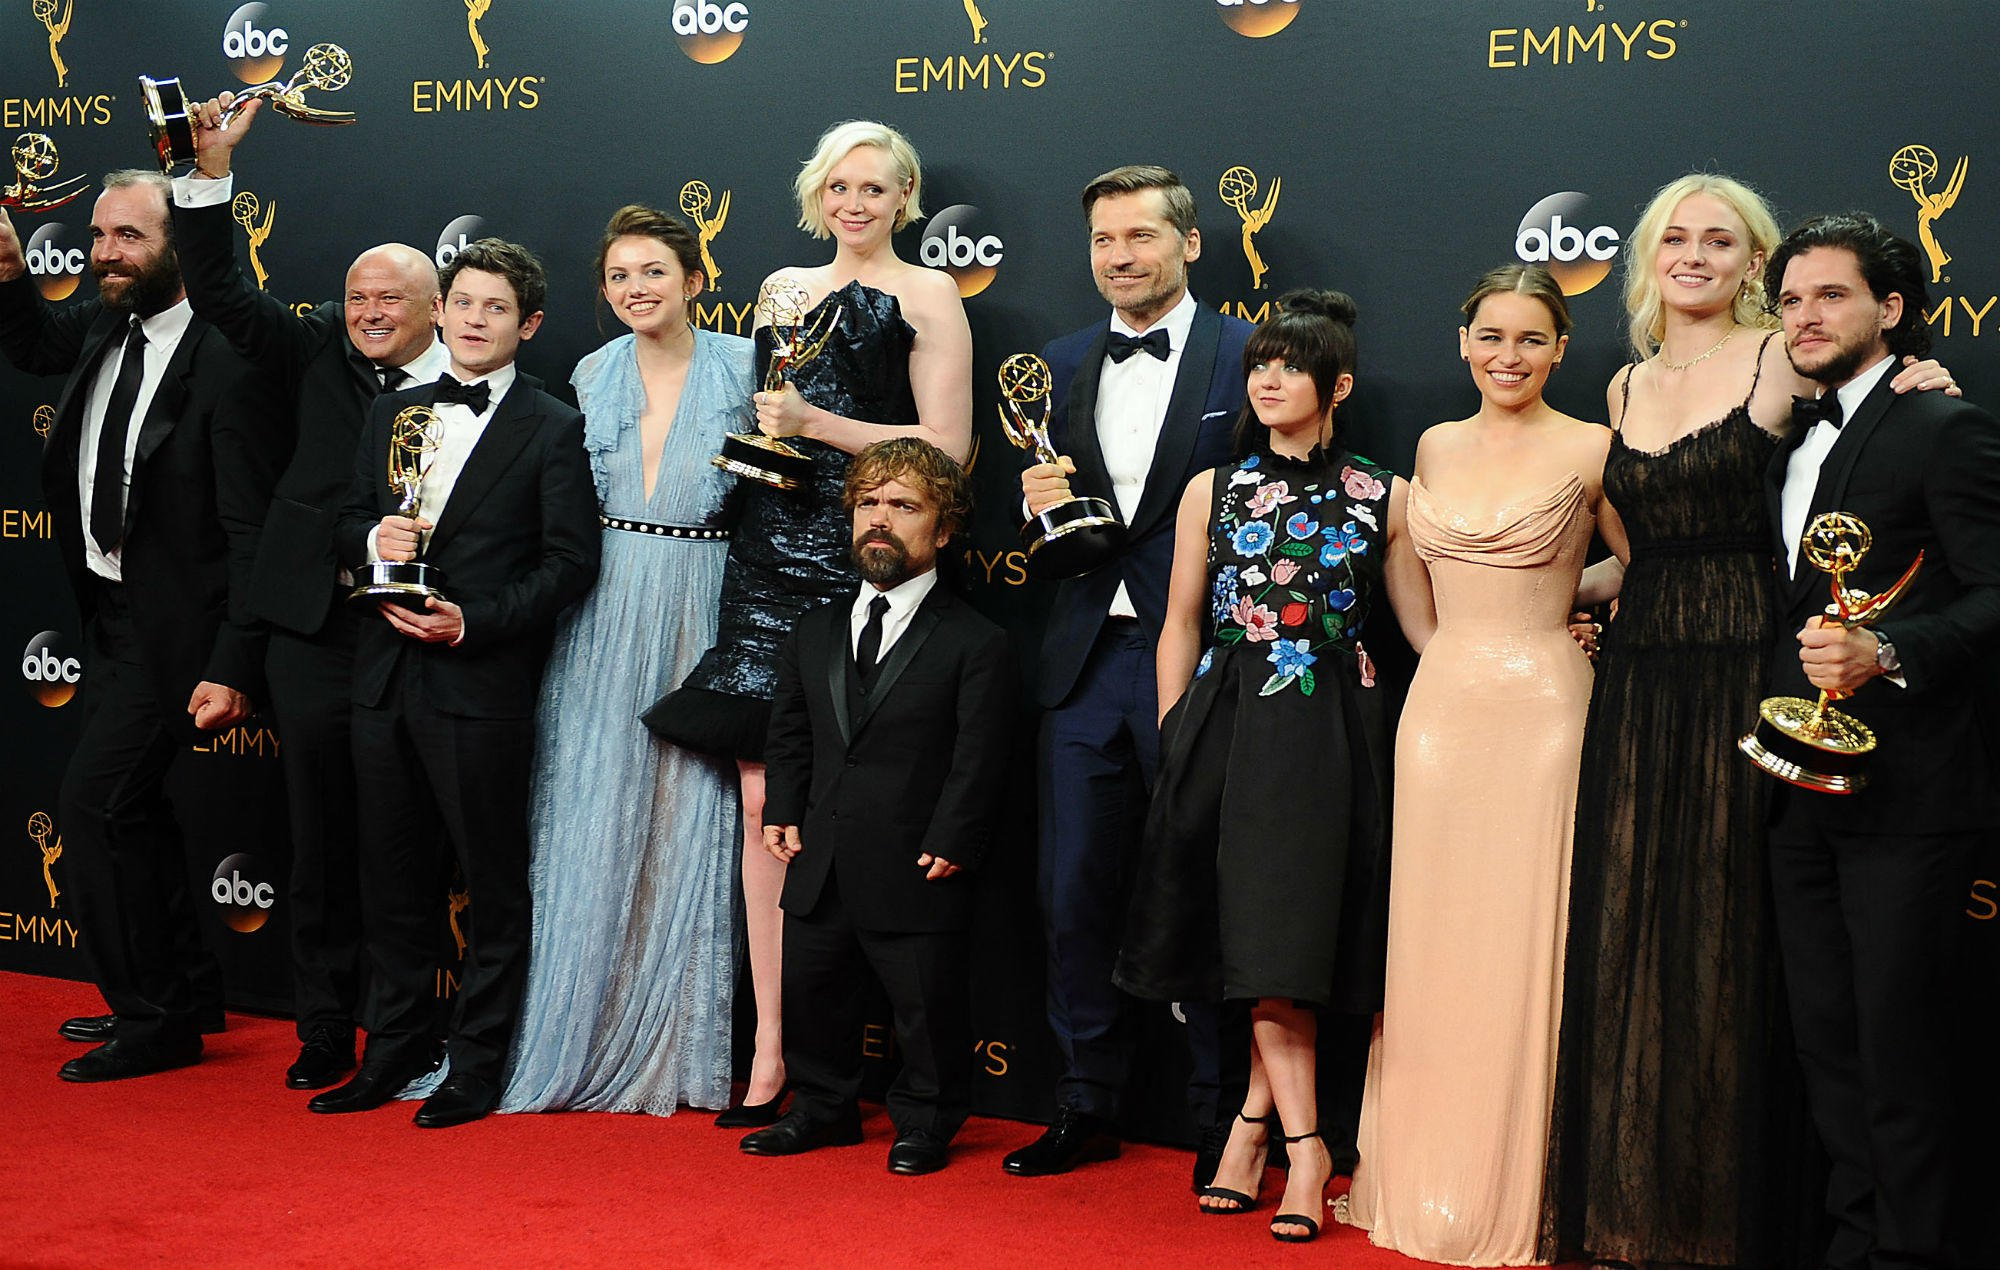 'Game of Thrones' reunion special will reunite all the characters from the show https://t.co/AbljQtNrtC https://t.co/HyWAaYerWX